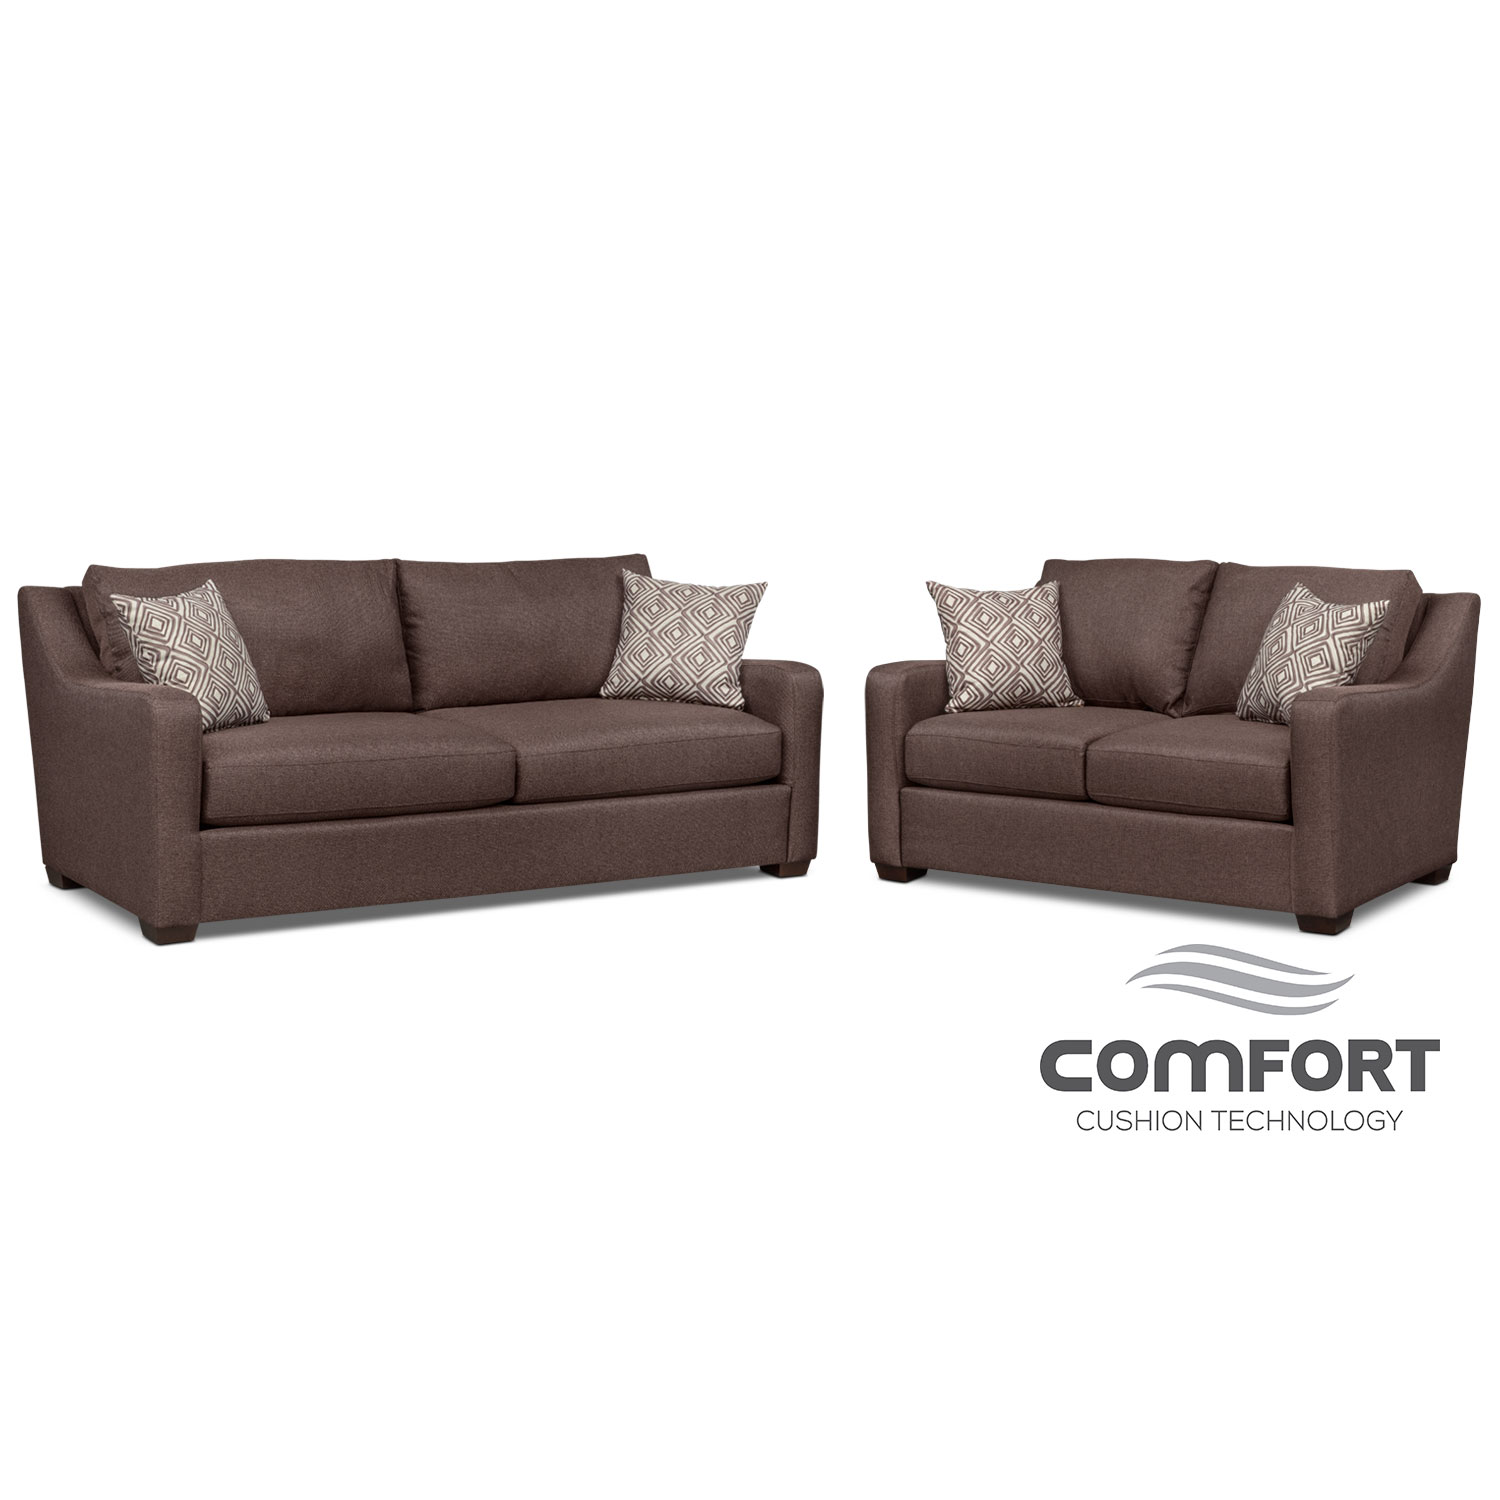 Living Room Furniture - Jules Comfort Sofa and Loveseat Set - Brown